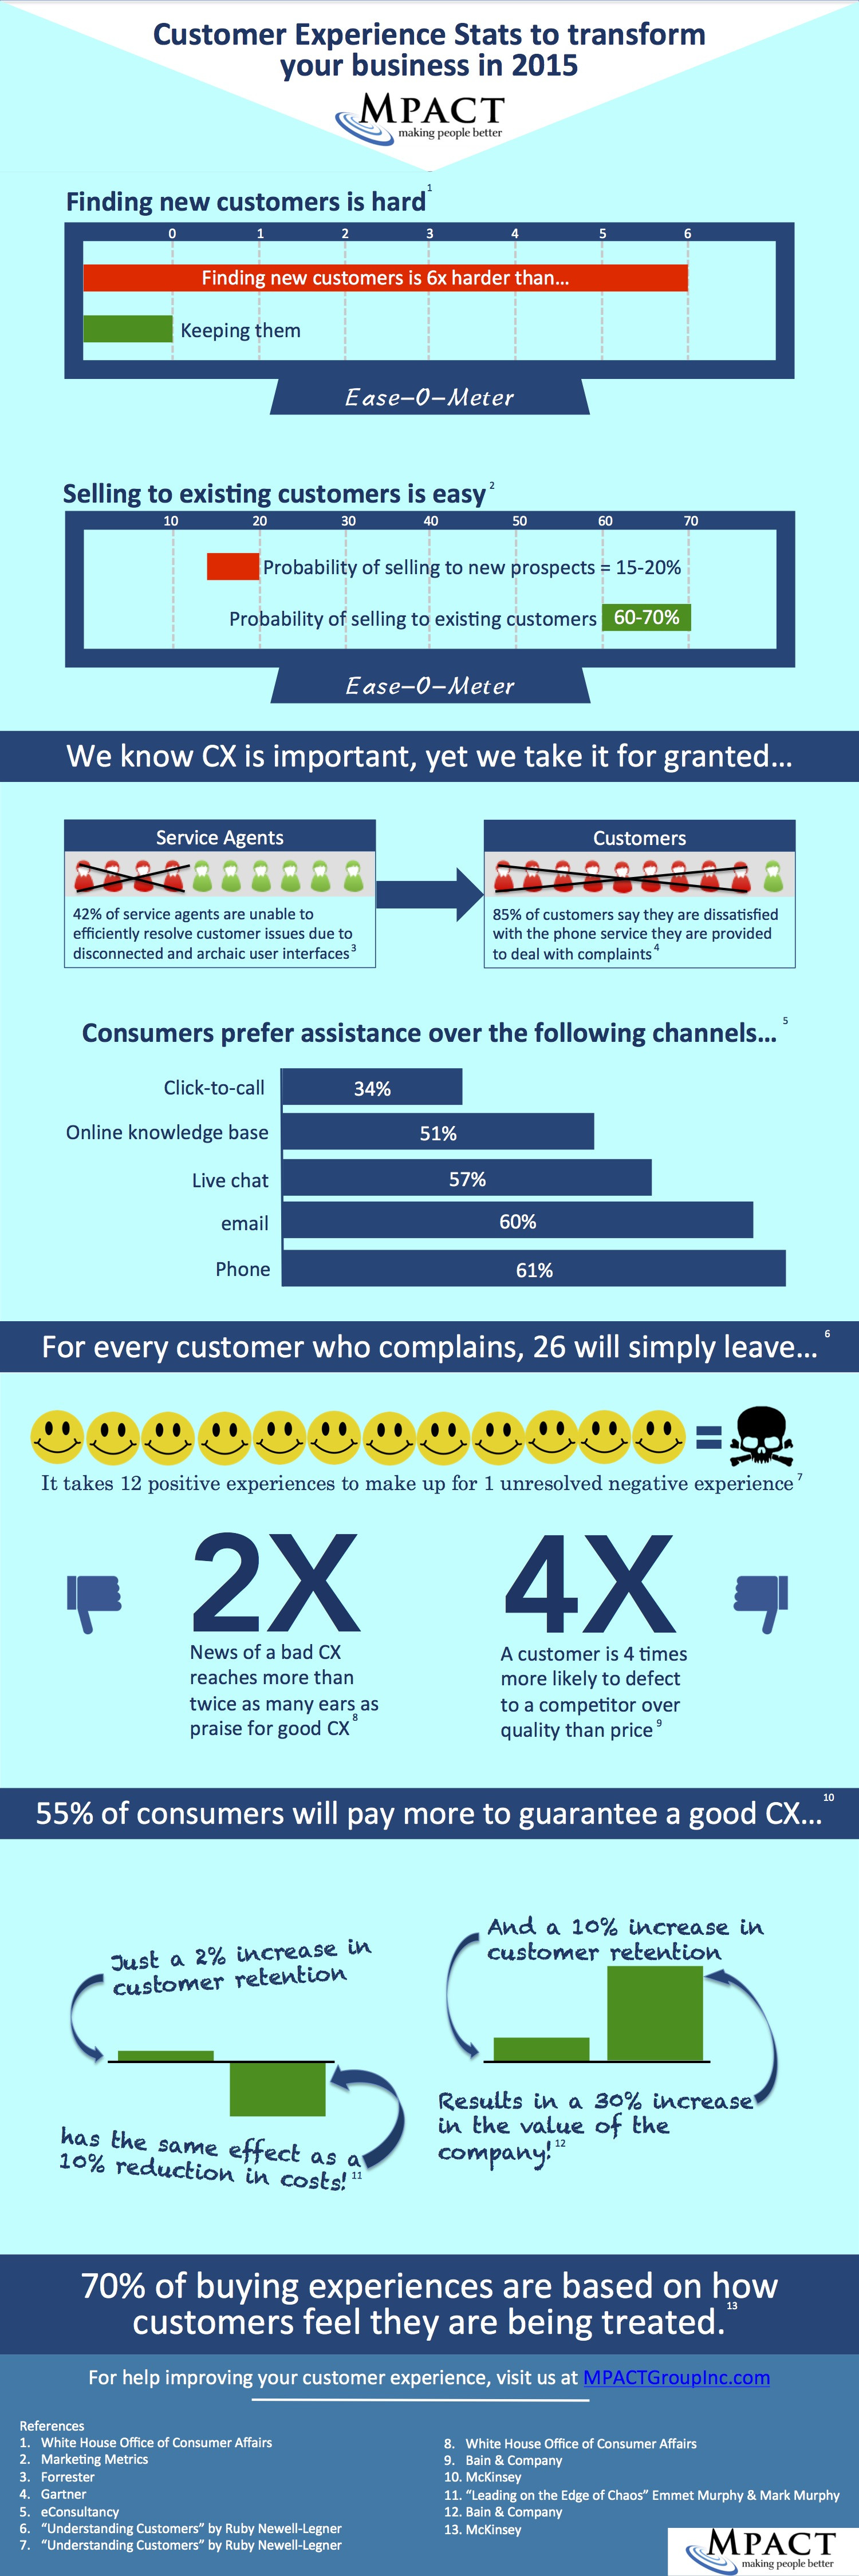 Customer Experience Stats to Transform Your Business in 2015 Infographic